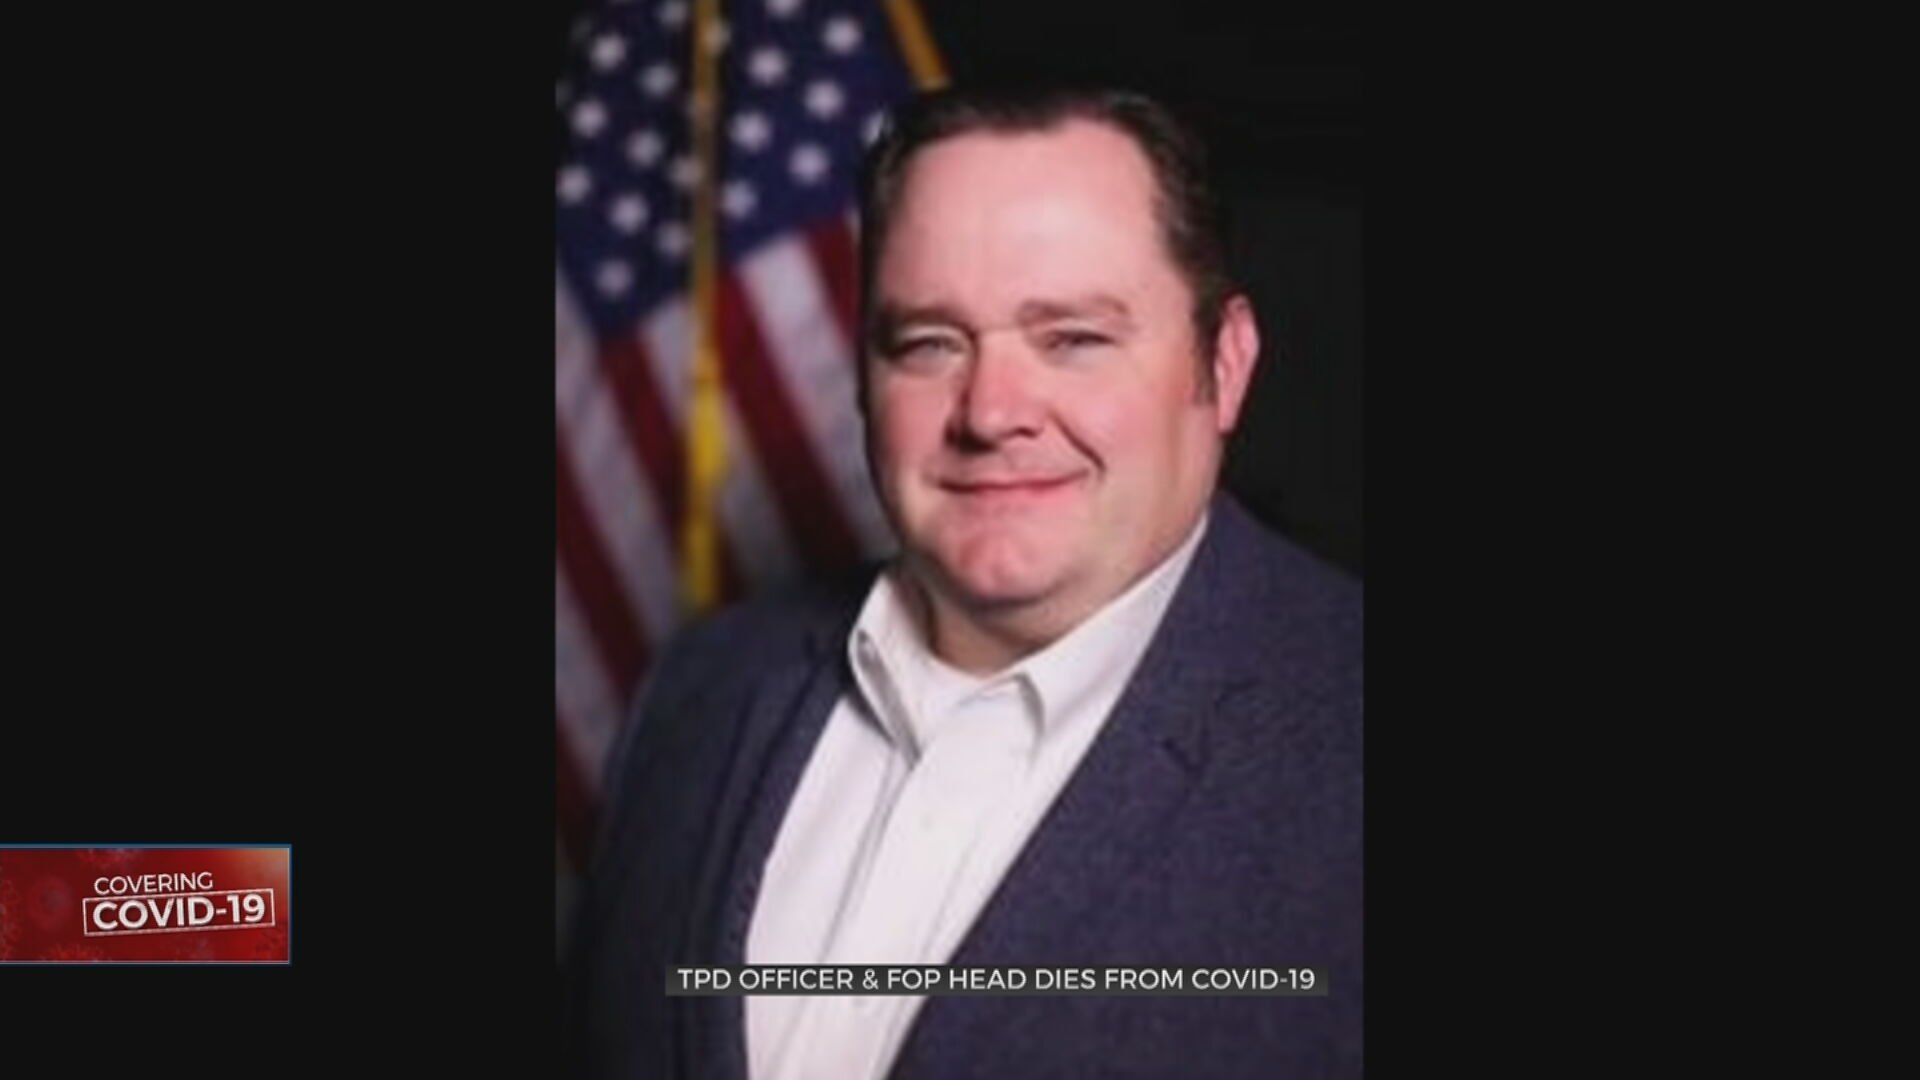 Tulsa Police Officer, FOP Chairman Dies From COVID-19 Complications